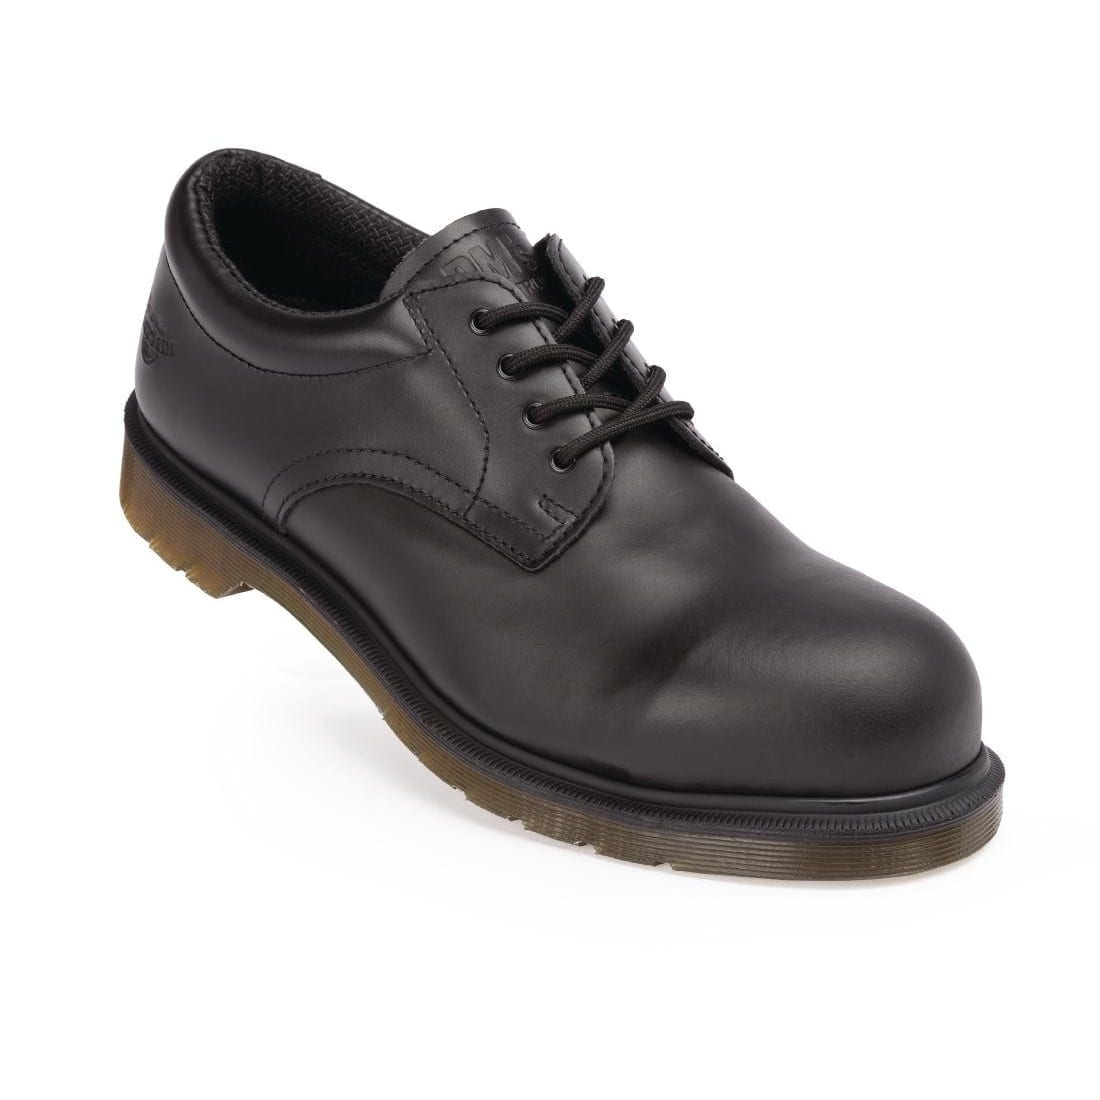 Dr Martens Classic Black Icon Safety Shoe - Size 46-0